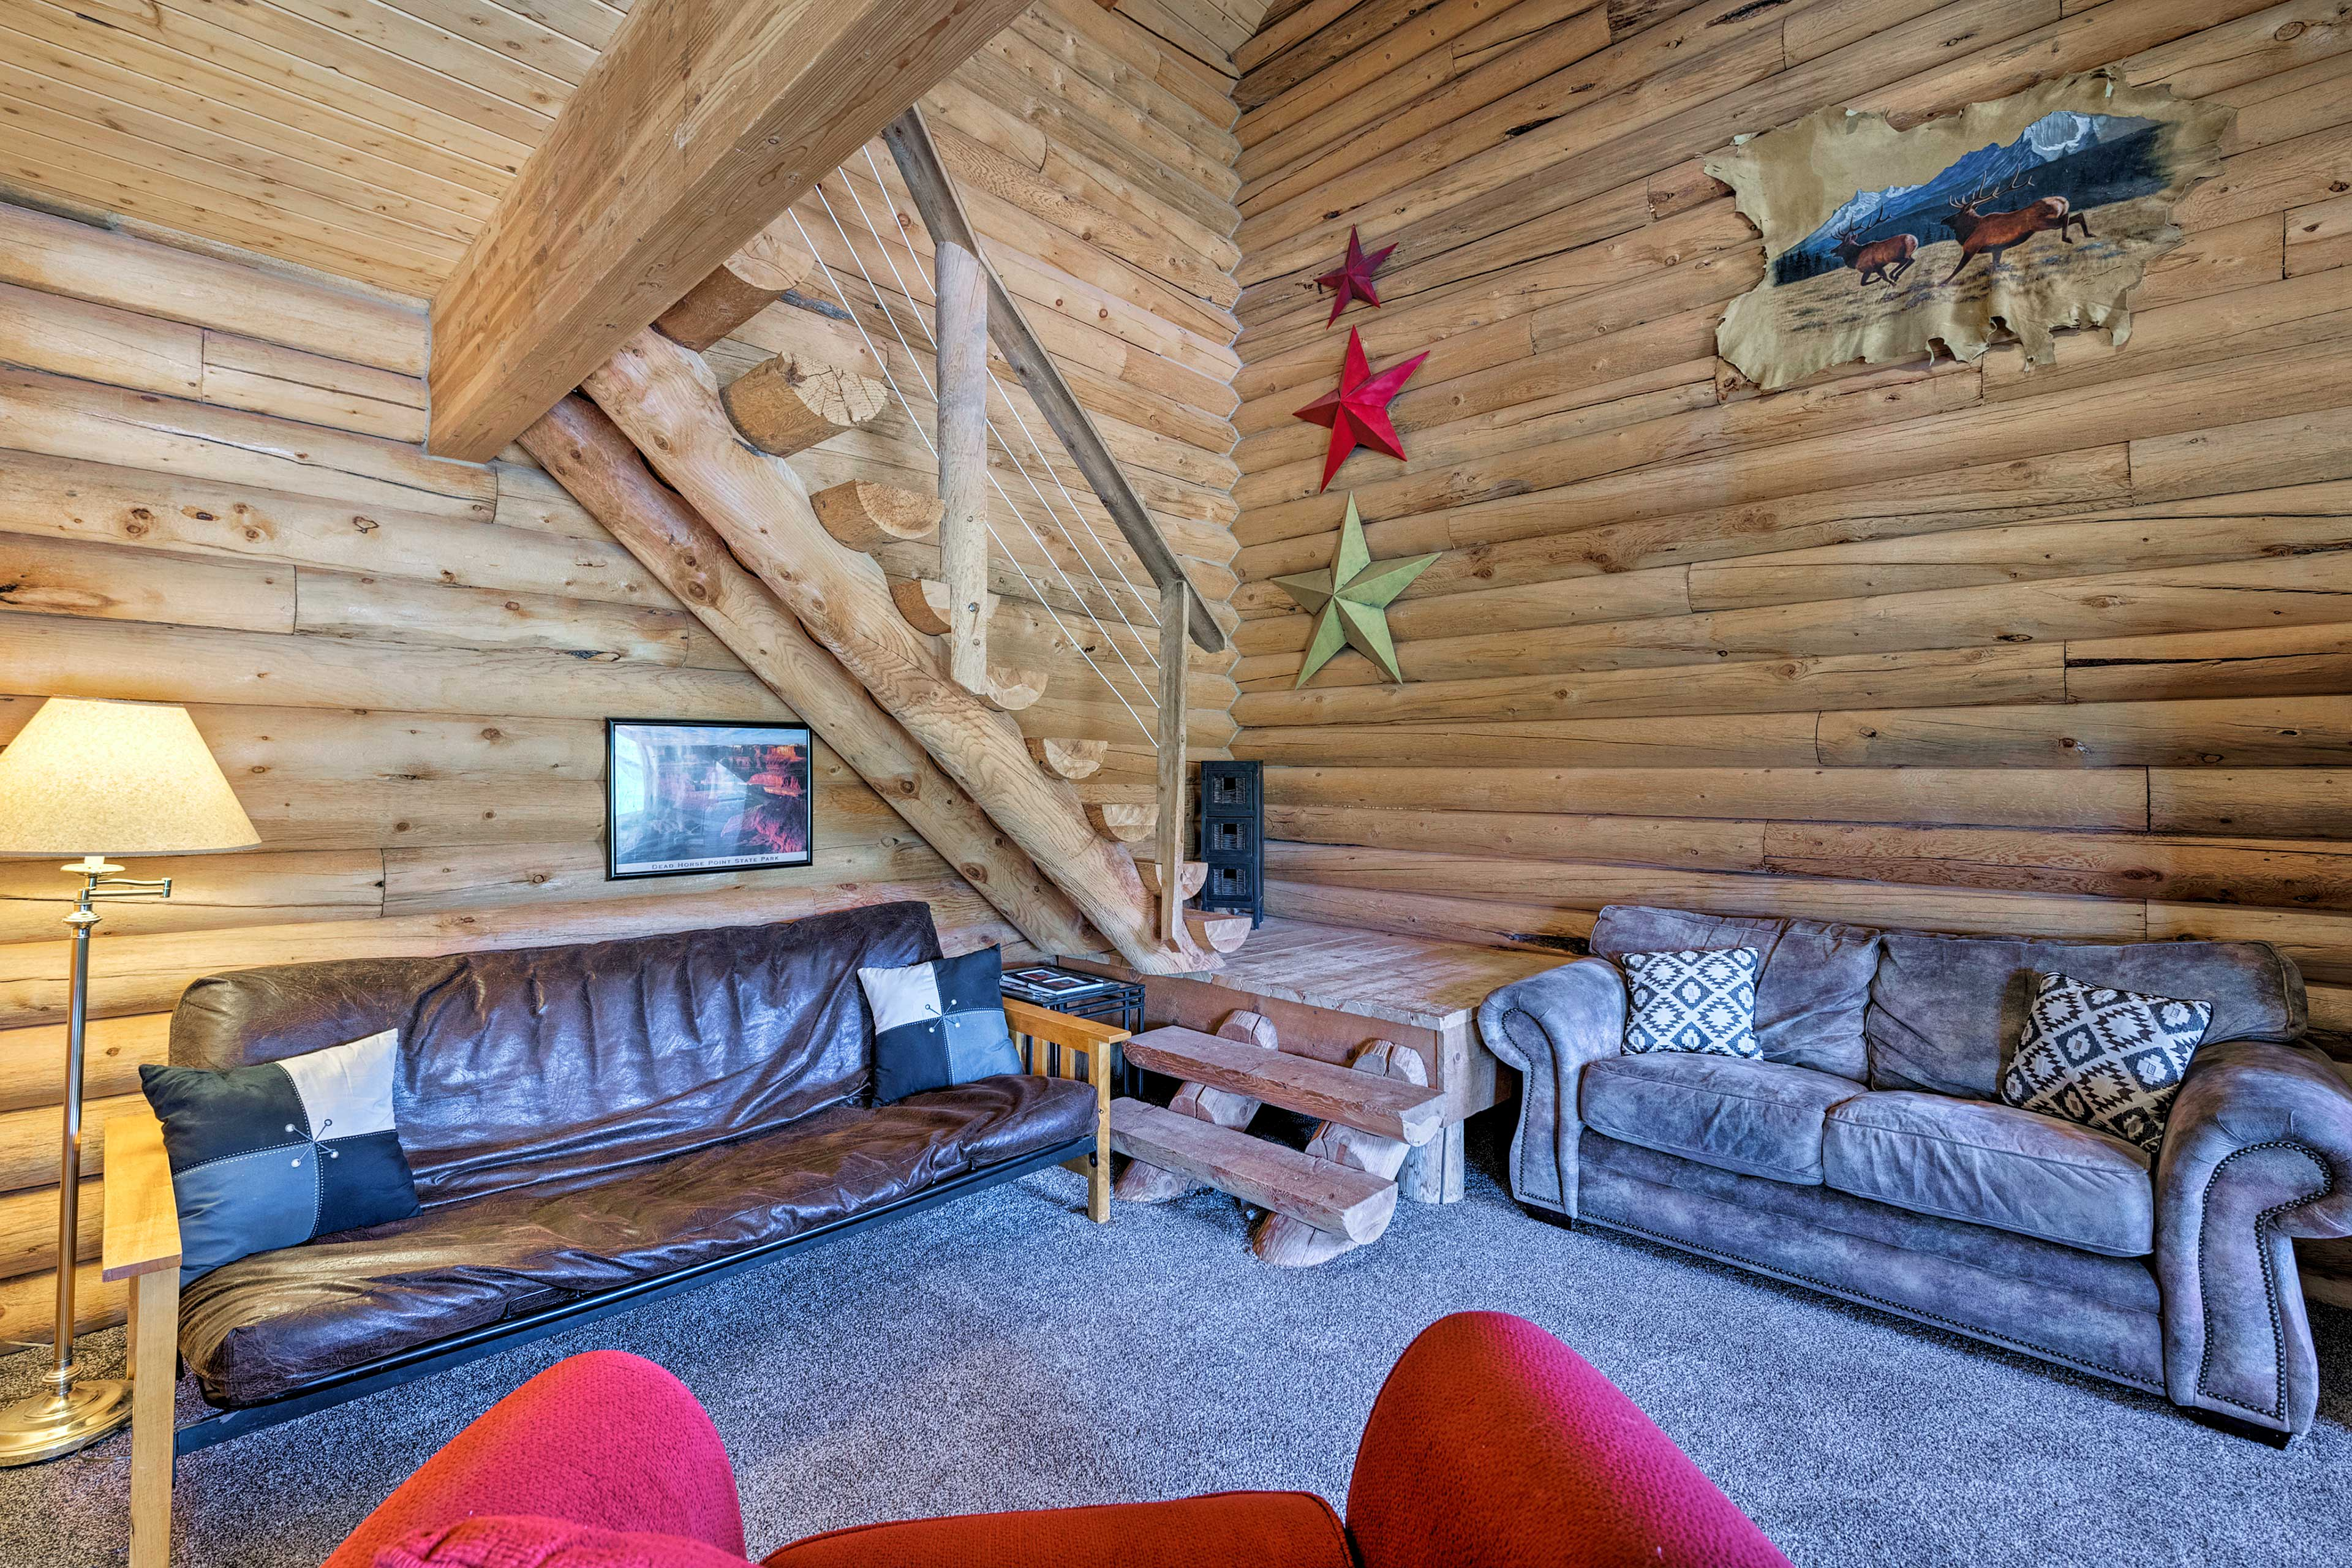 The 1,000-square-foot interior features 2 bedrooms, 1 bath and room for 6.